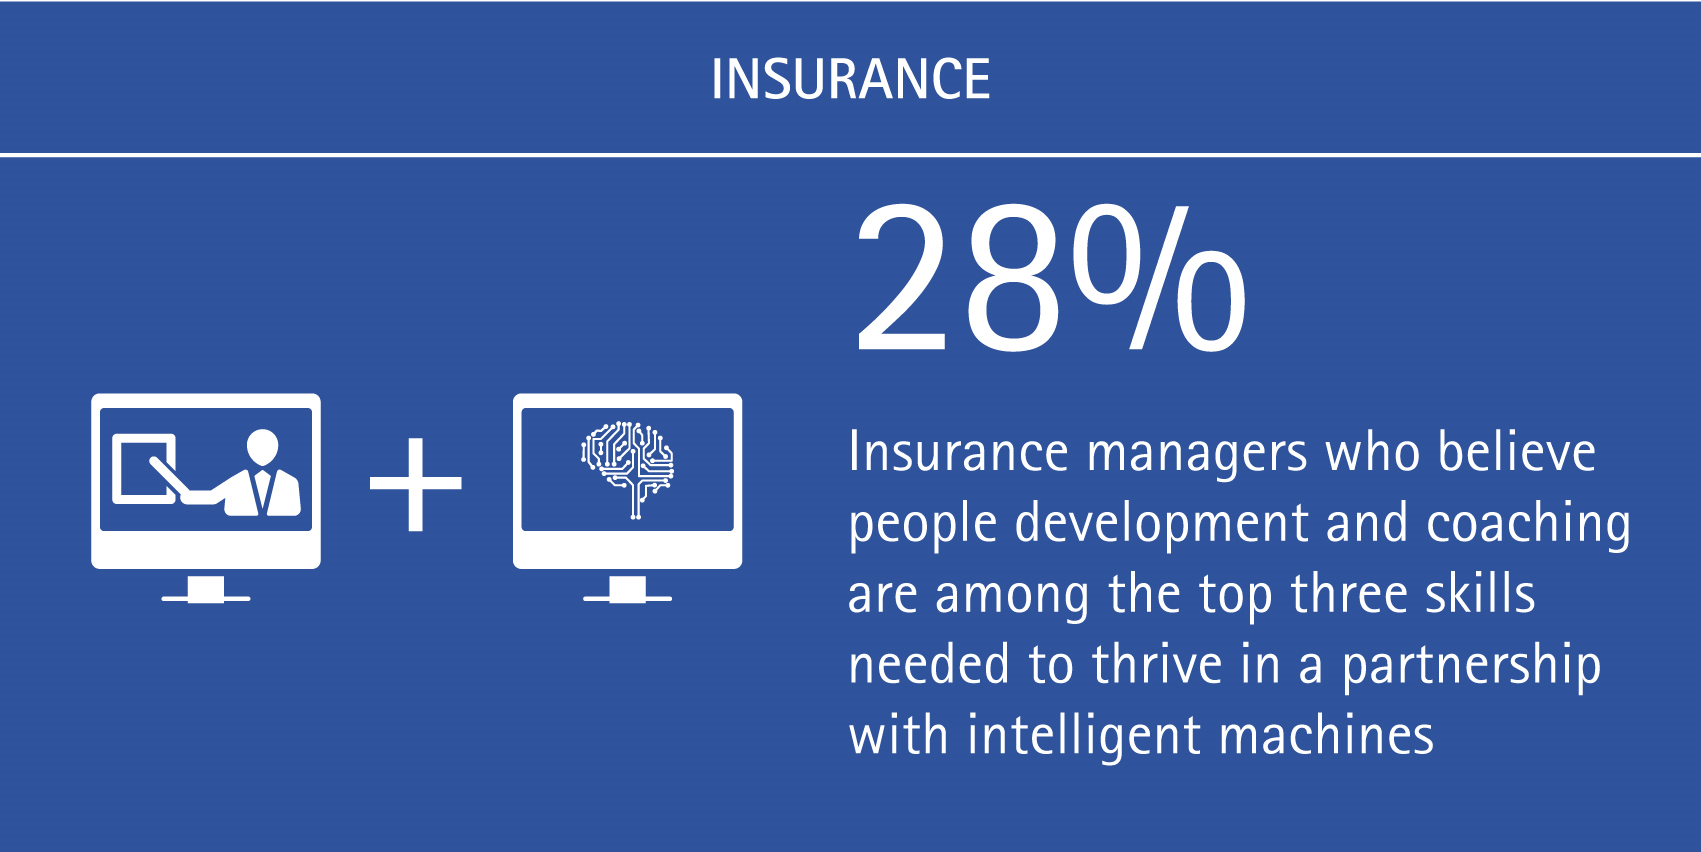 28% of insurance managers believe people development and coaching are among the top three skills needed to thrive in a partnership with intelligent machines.